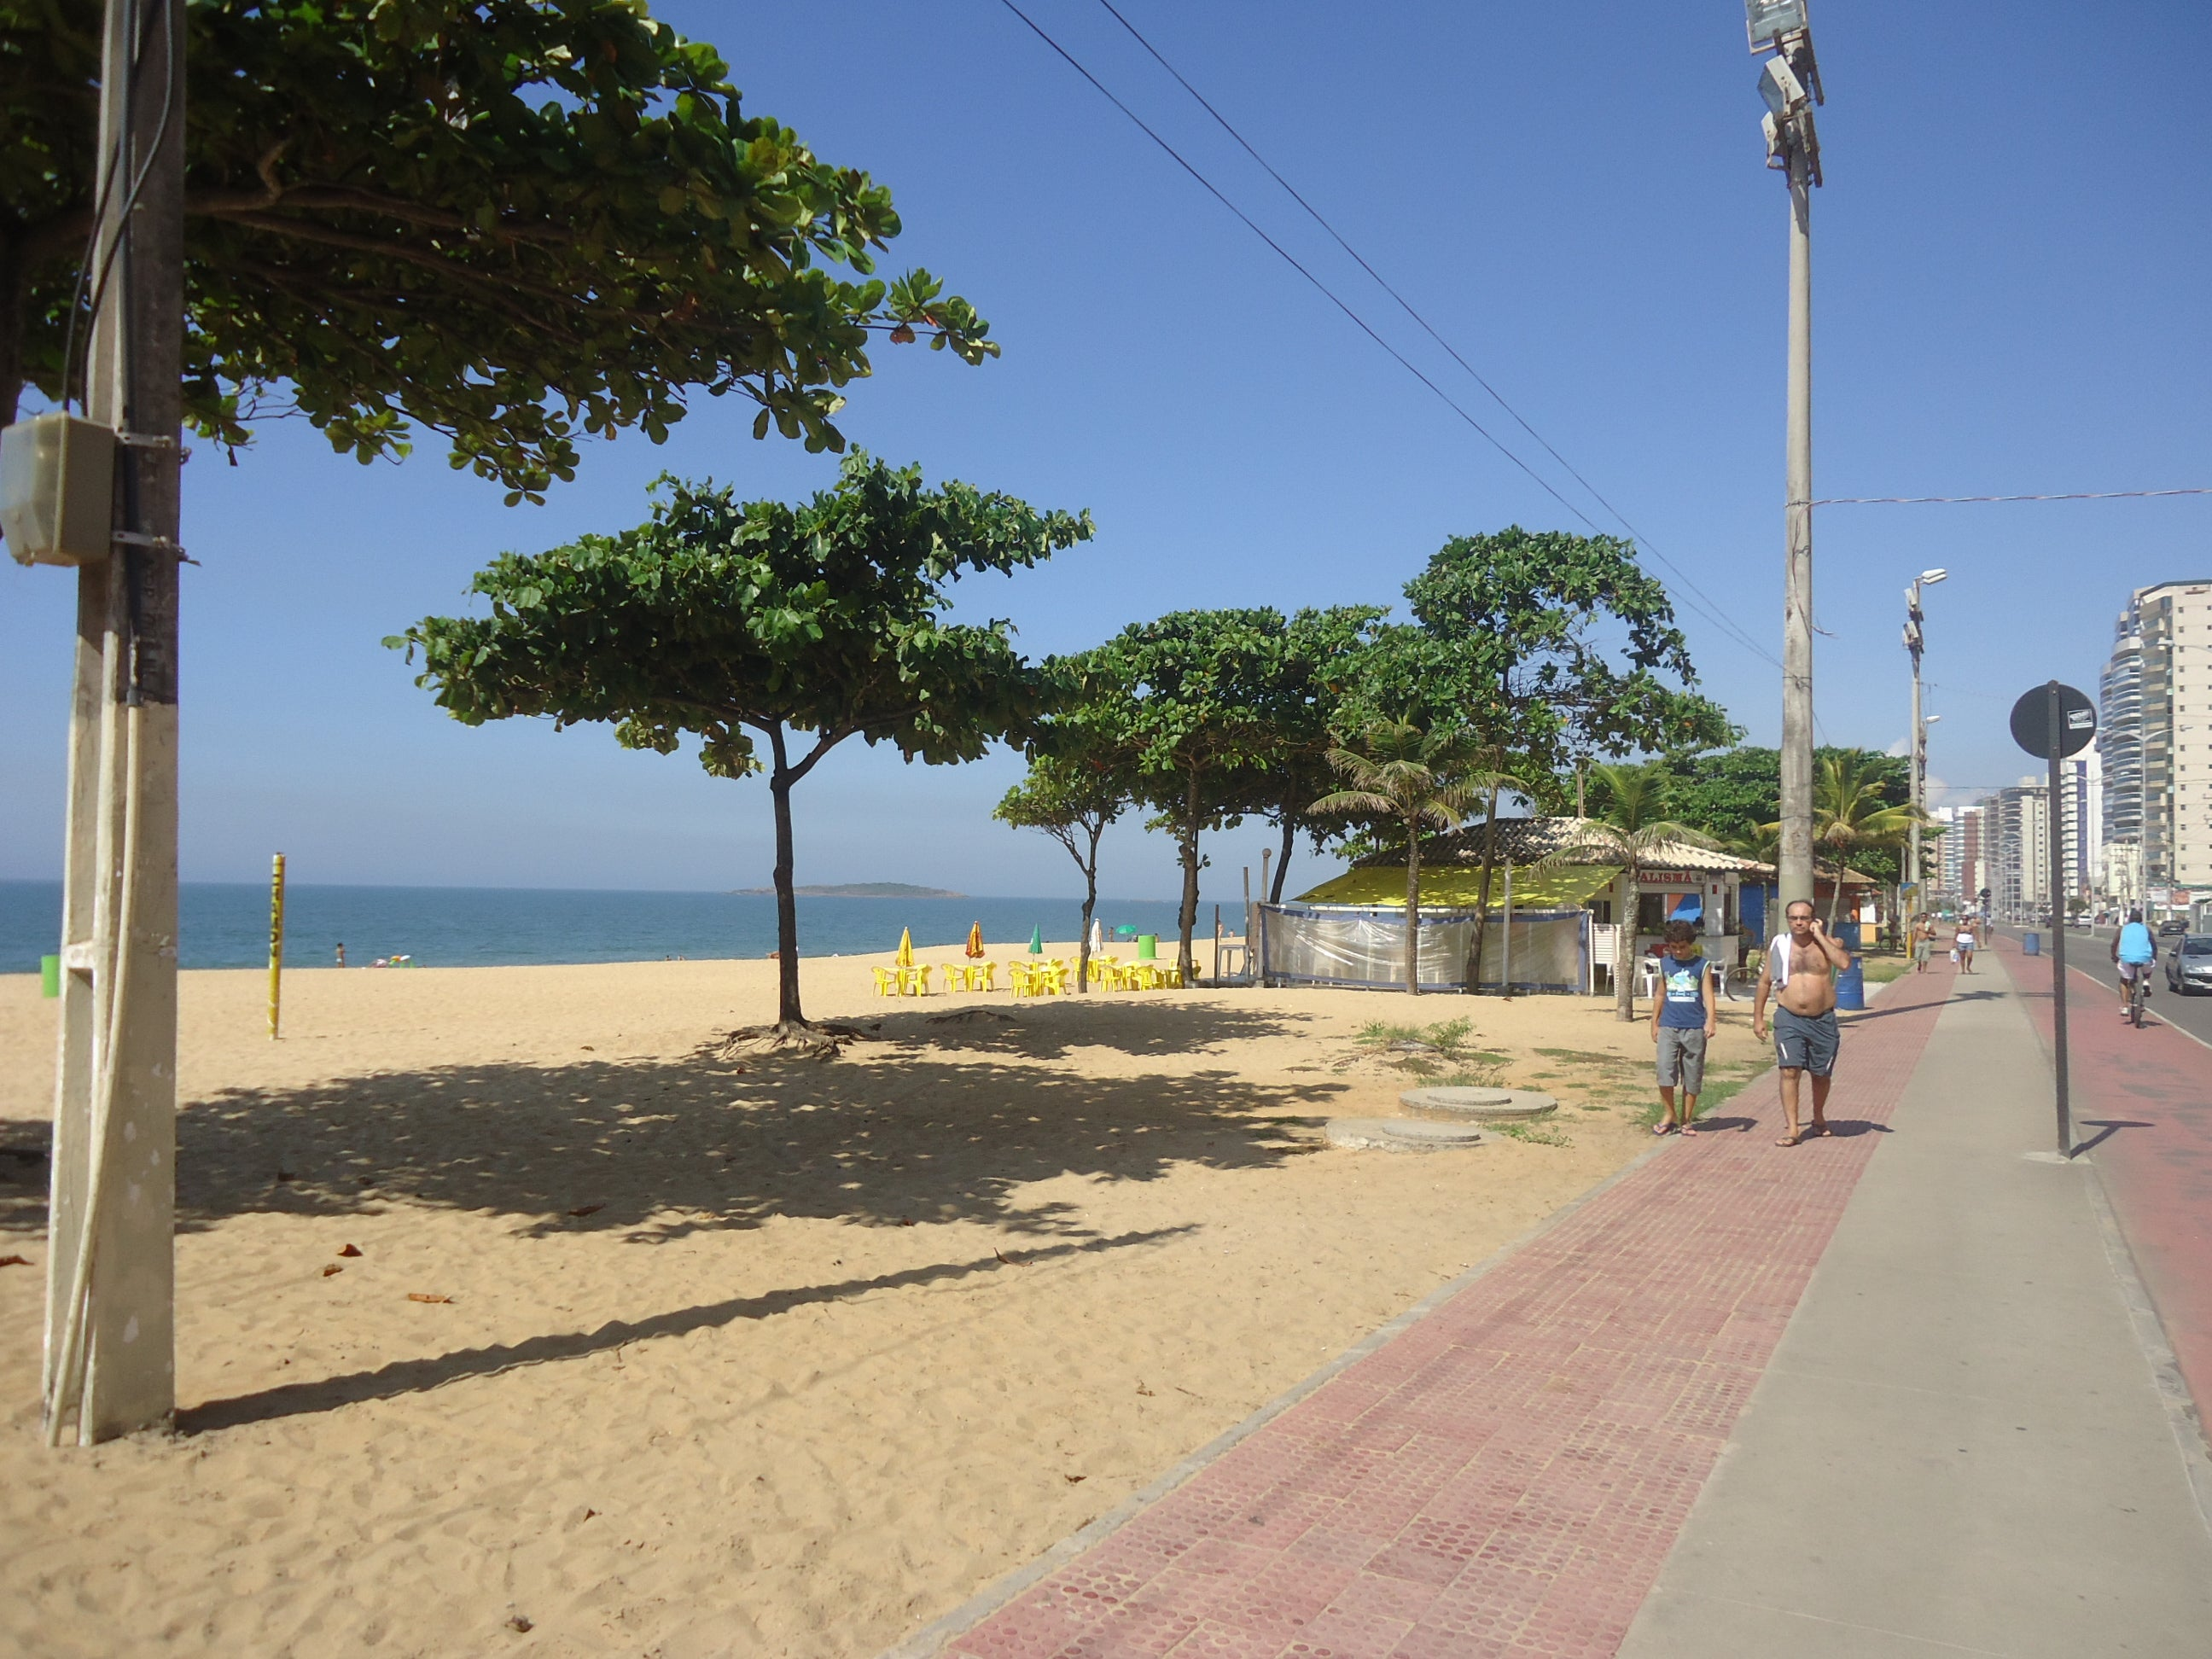 Playa de Itaparica